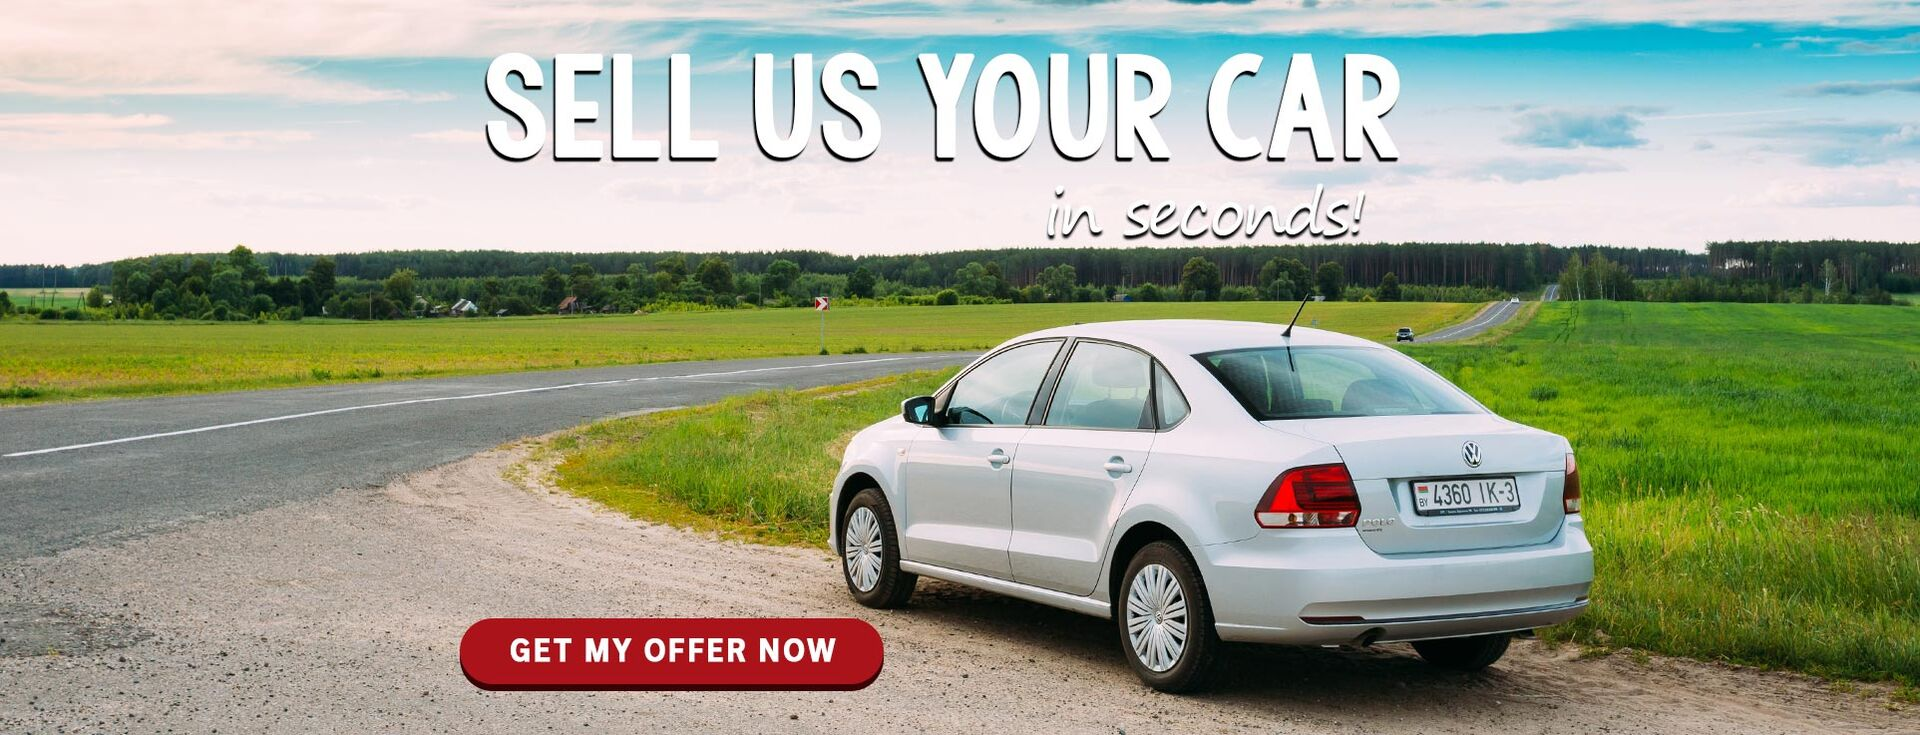 Sell Your Car with Low Book Sales